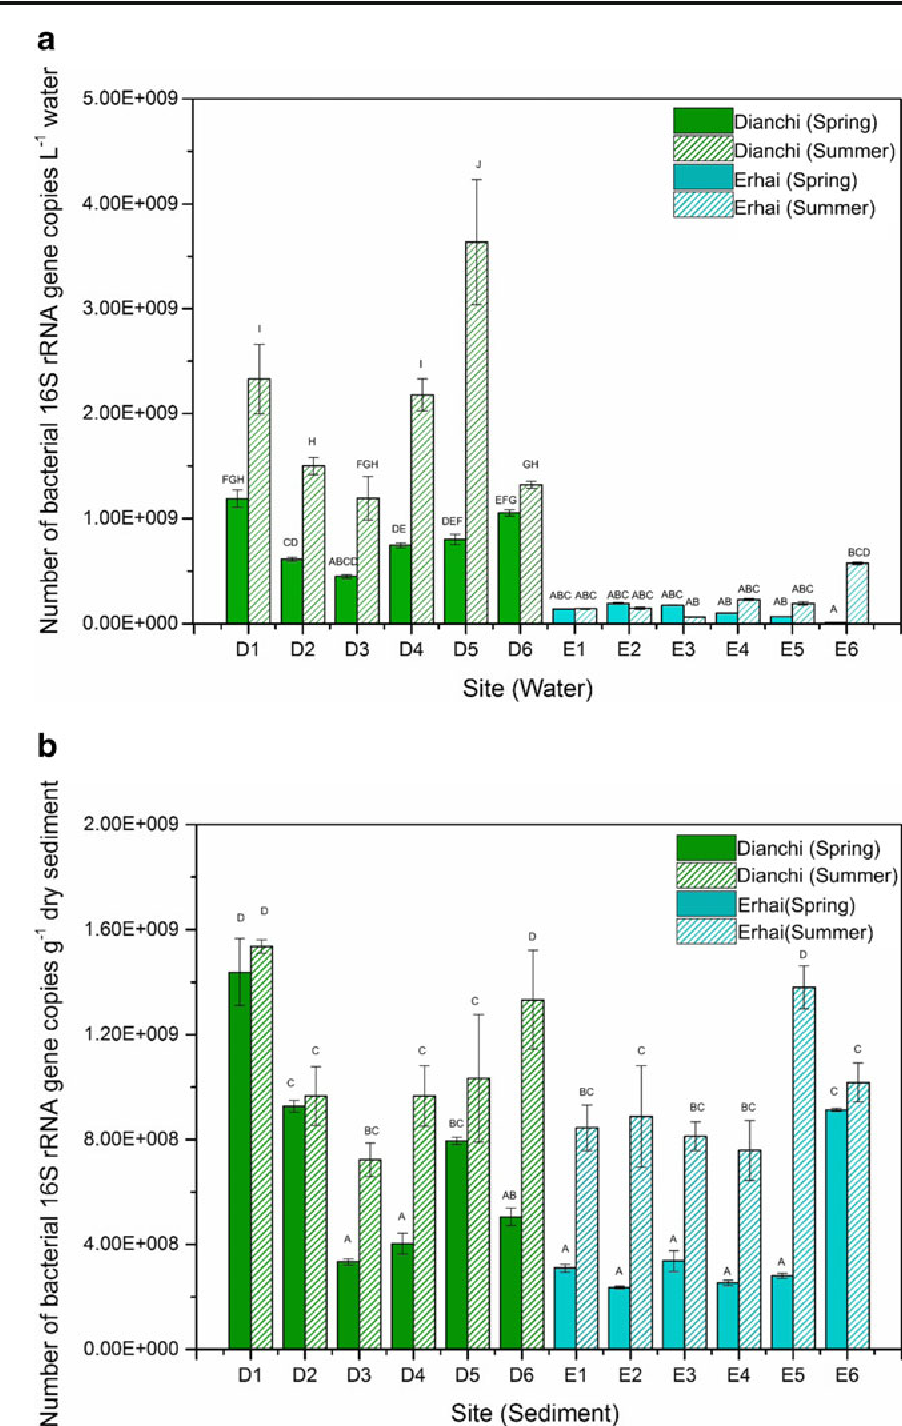 Fig. 1 Abundance of bacterial 16S rRNA gene in spring and summer water samples (a) and sediment samples (b) from different sampling sites in Dianchi Lake and Erhai Lake. Different letters above the columns indicate significant differences (P< 0.05)